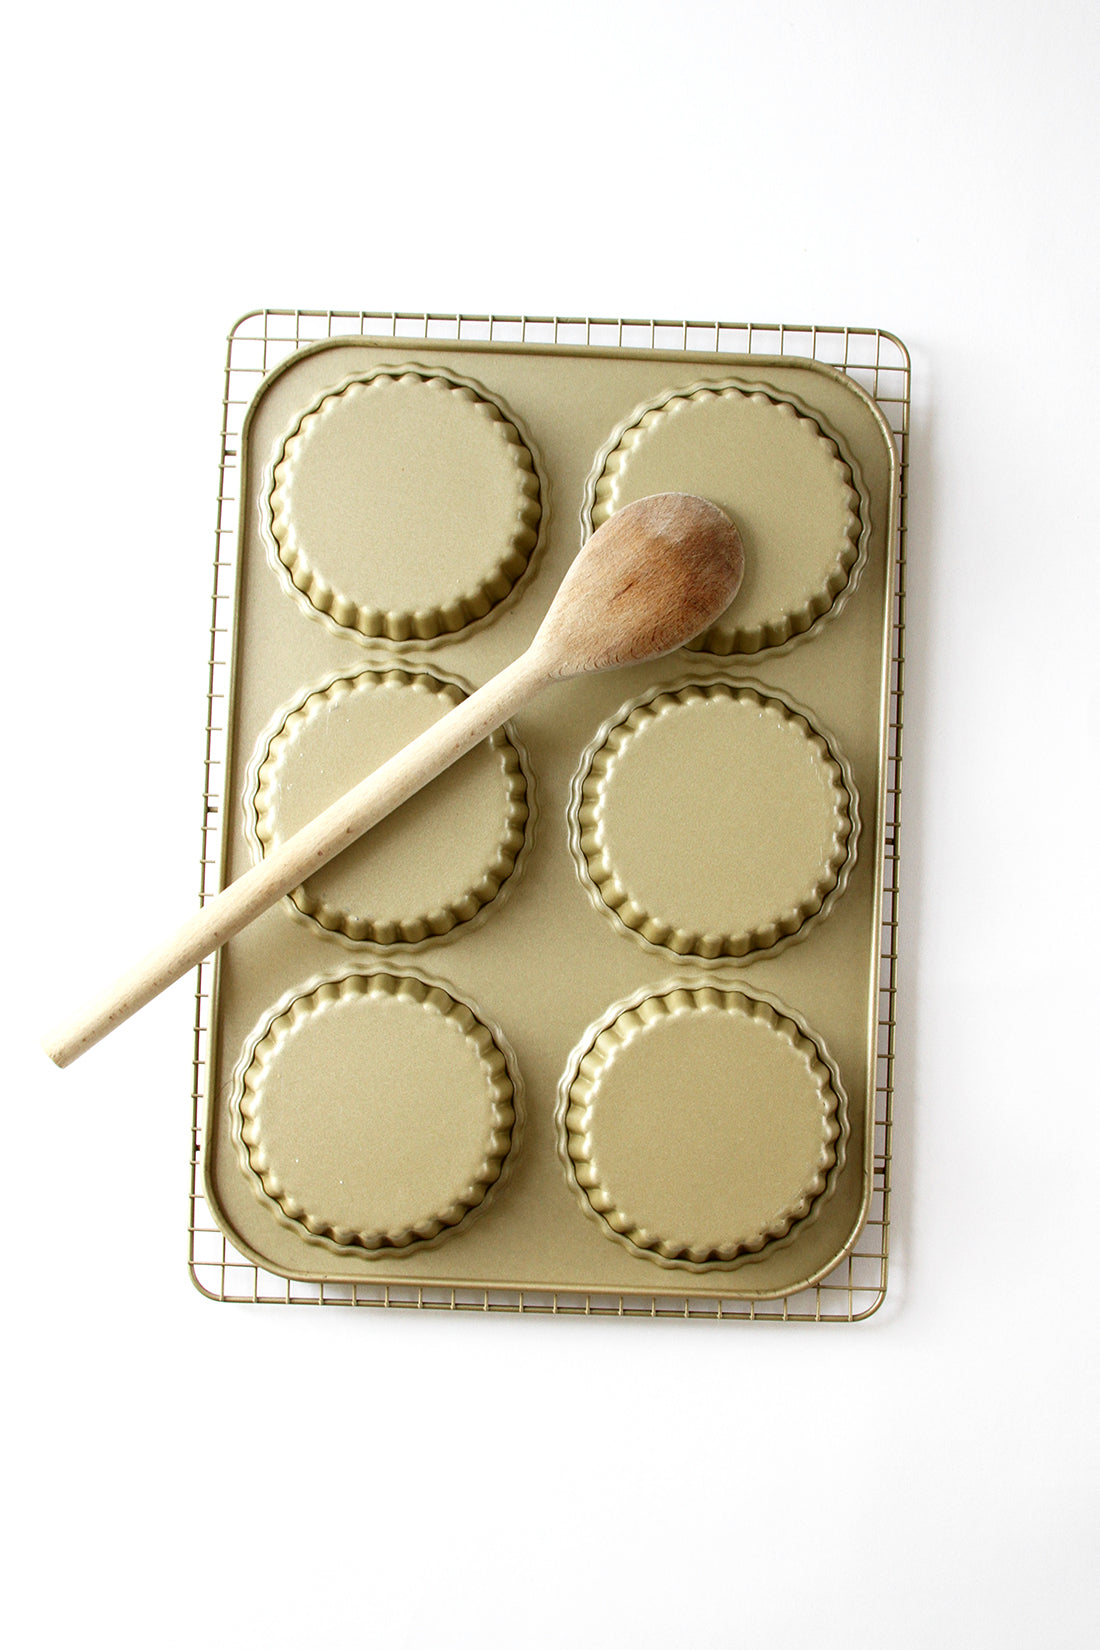 Image of a wooden spoon on the bottom of a baking sheet for Miss Jones Baking Co Fruit Cart Tarts recipe